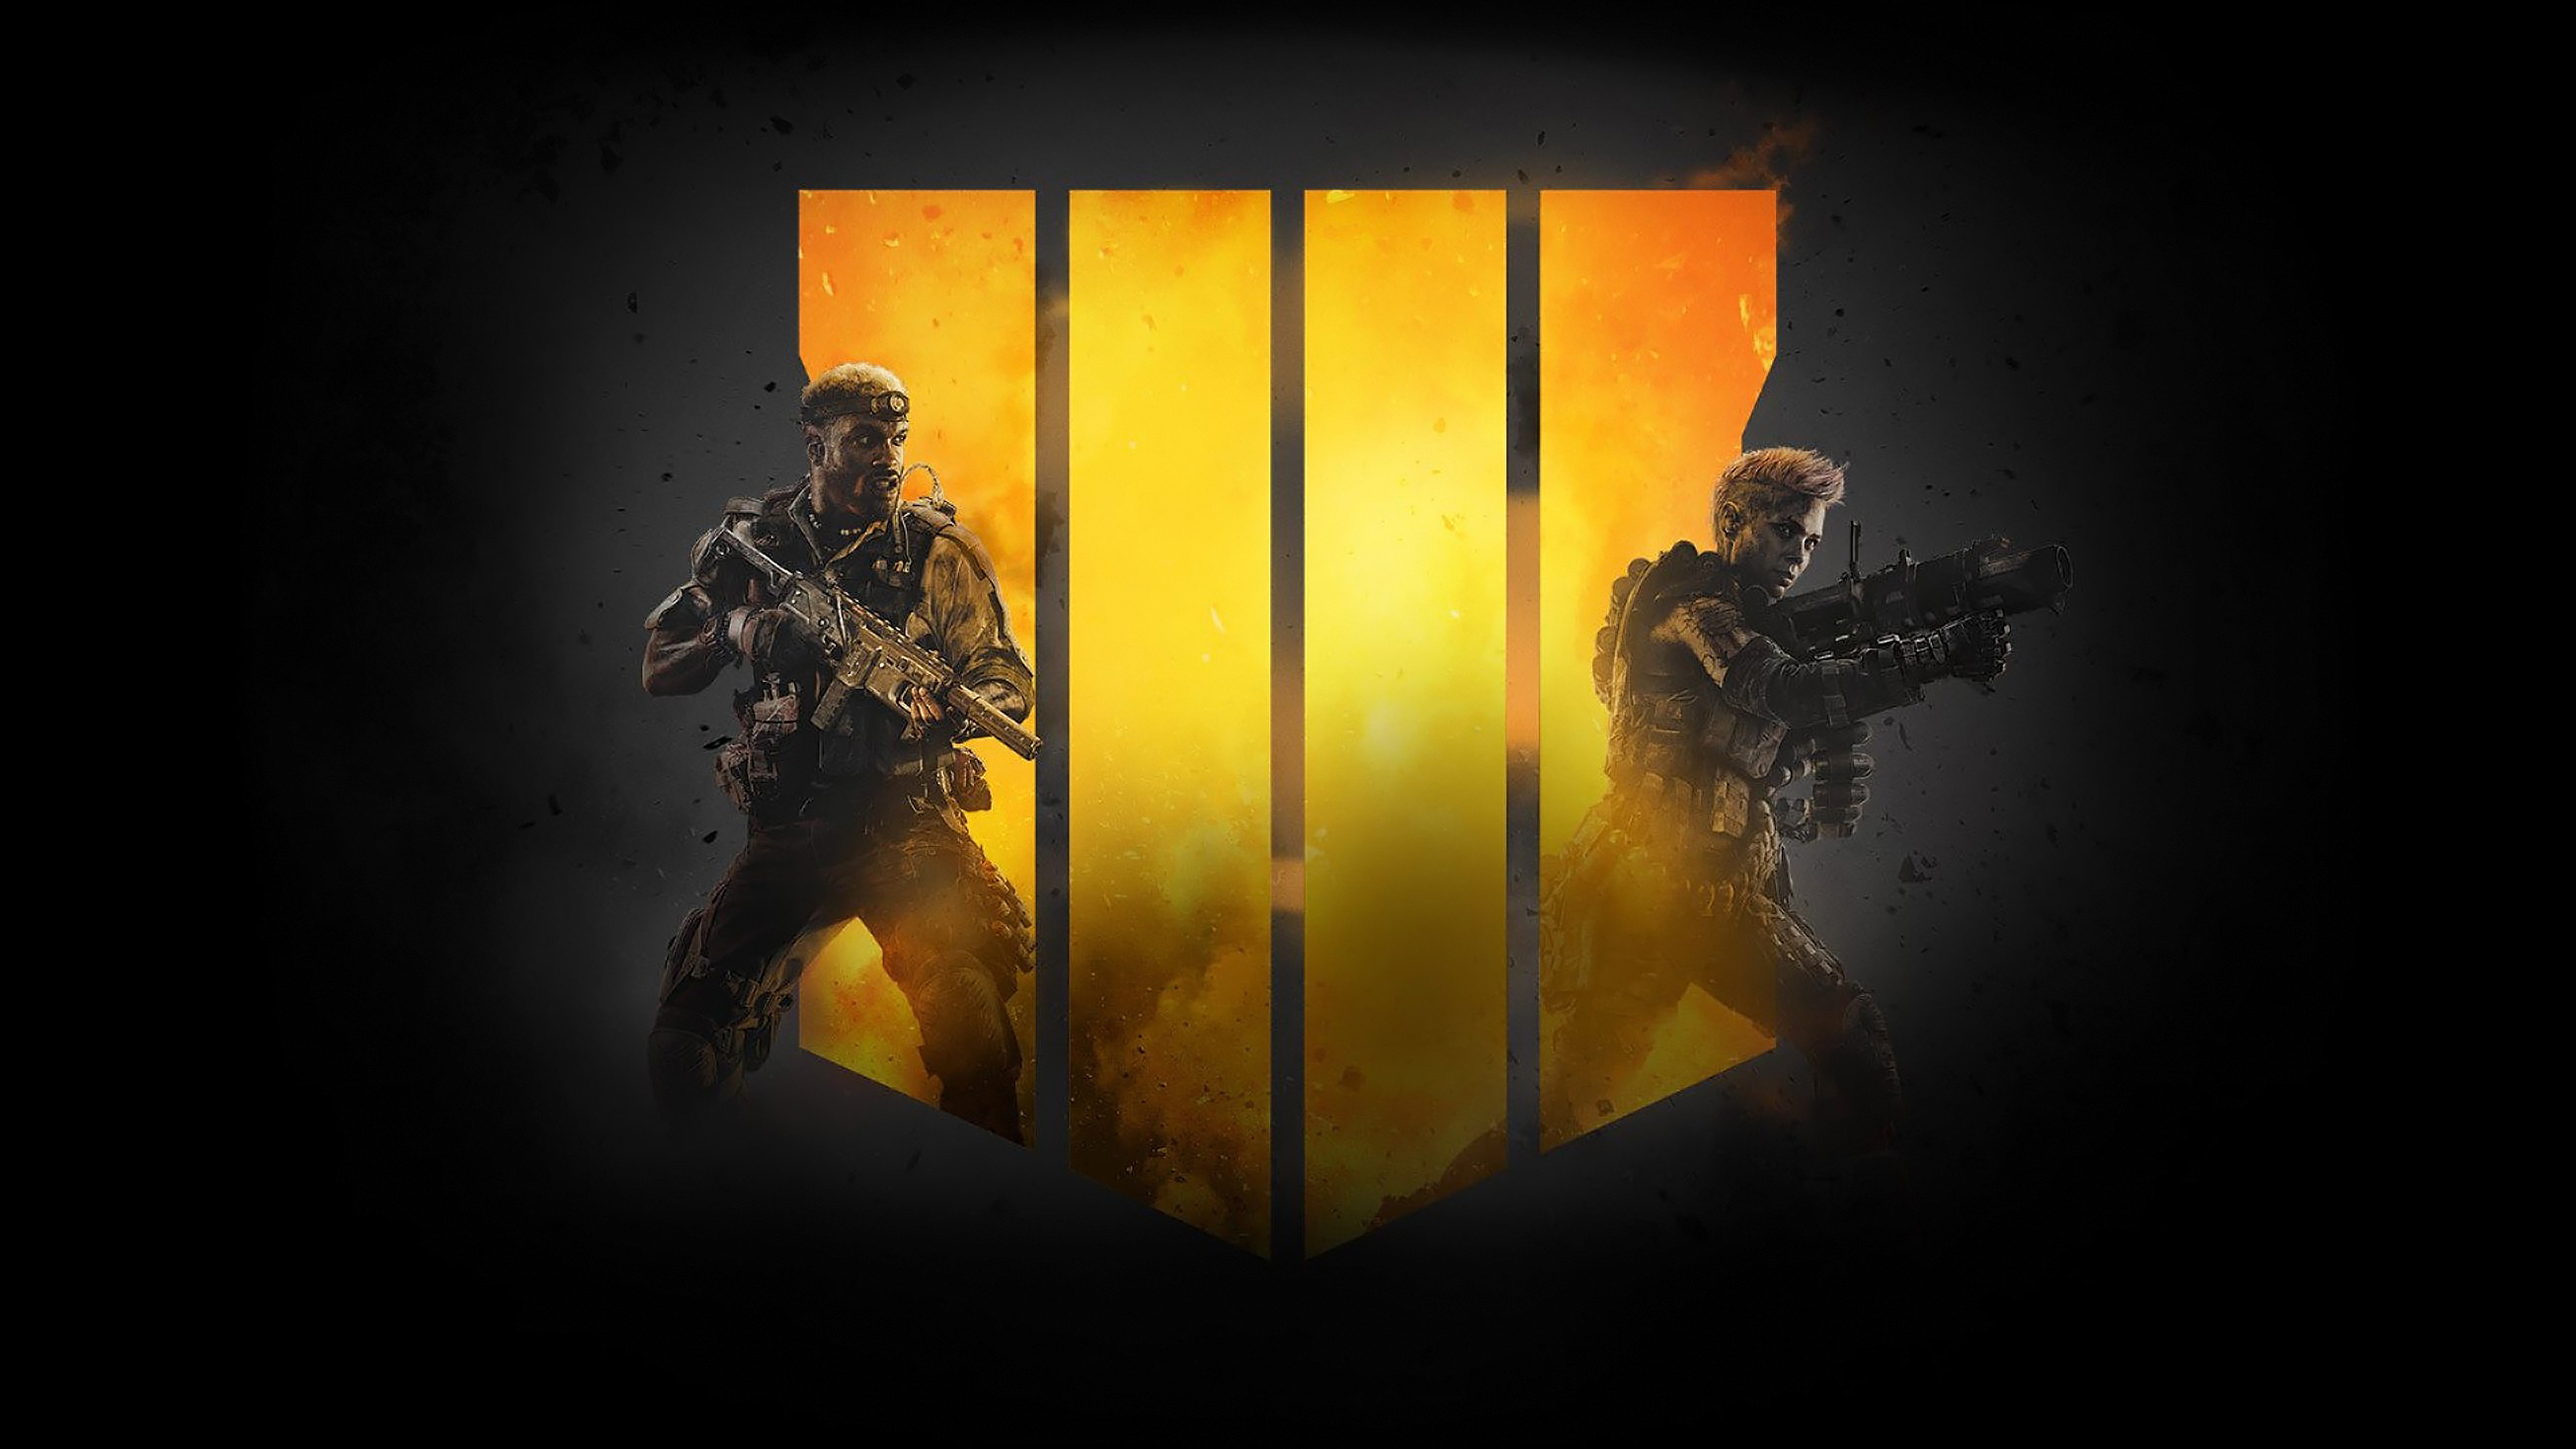 2018 call of duty black ops 4 gc 3840x2160 - Call of duty black ops 2018 - Call of duty black ops wallpapers new, Call of duty black ops hd wallpapers, Call of duty black ops game wallpapers, call of duty black ops 4k wallpapers